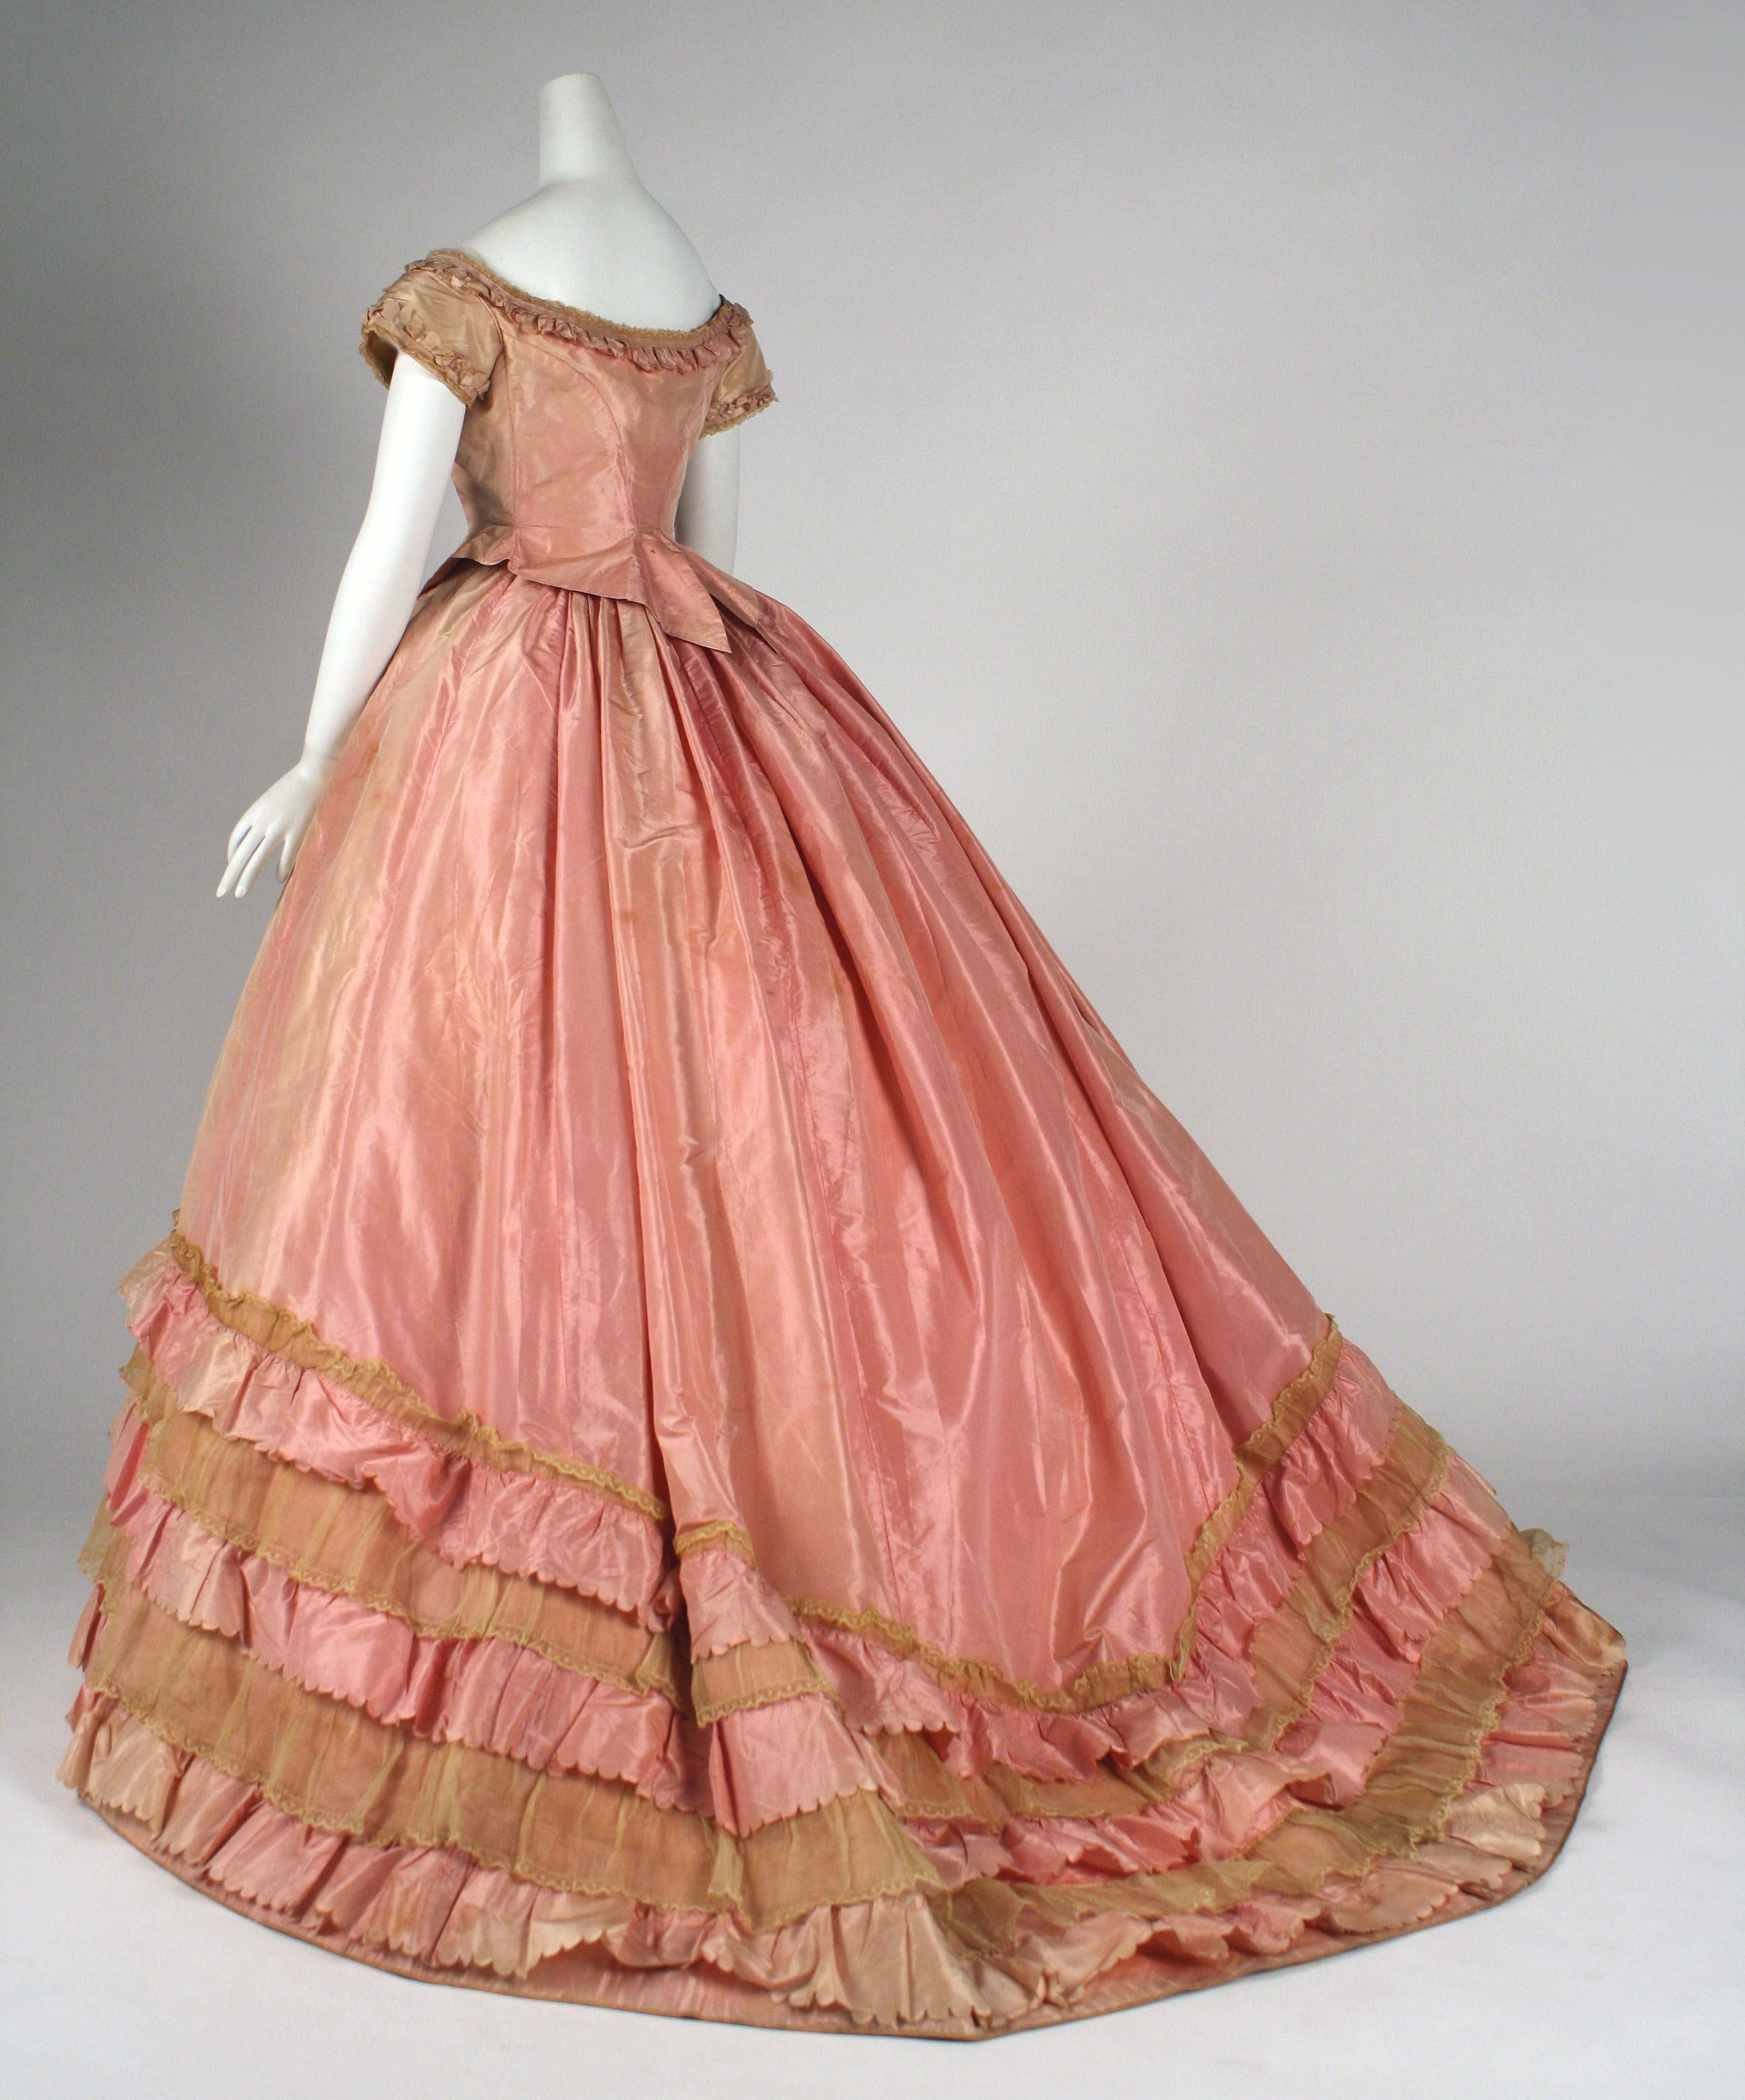 Dress: ca. 1866-1868, American, silk.